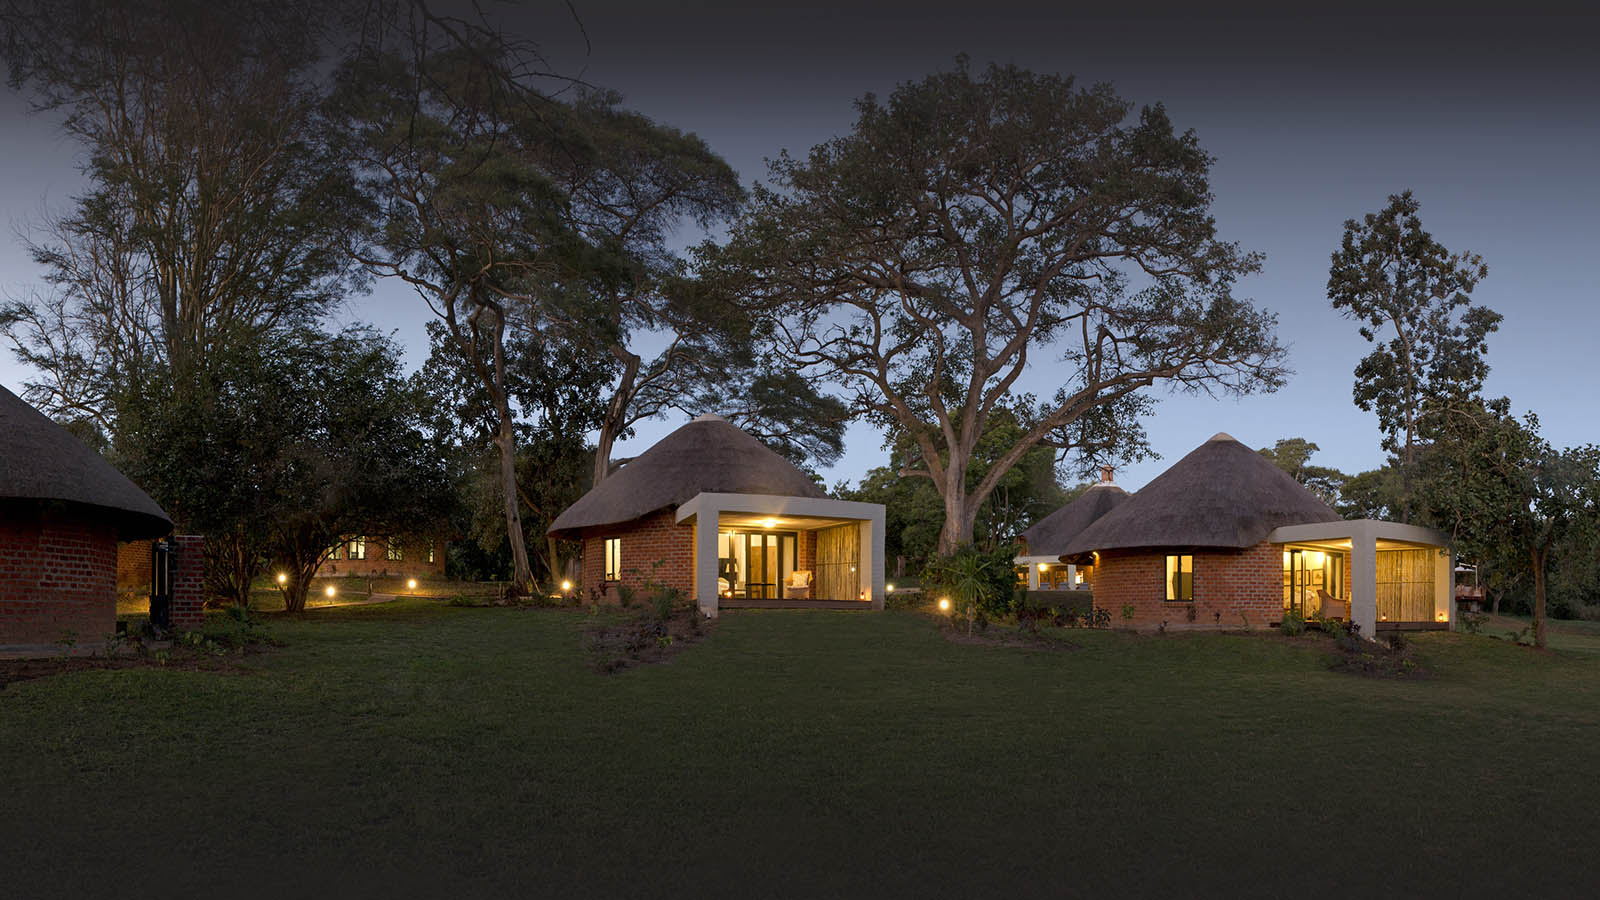 lilayi lodge zambia-in-style-tours-safari-packages-lodges-accommodation-lusaka-panaromic-buildings